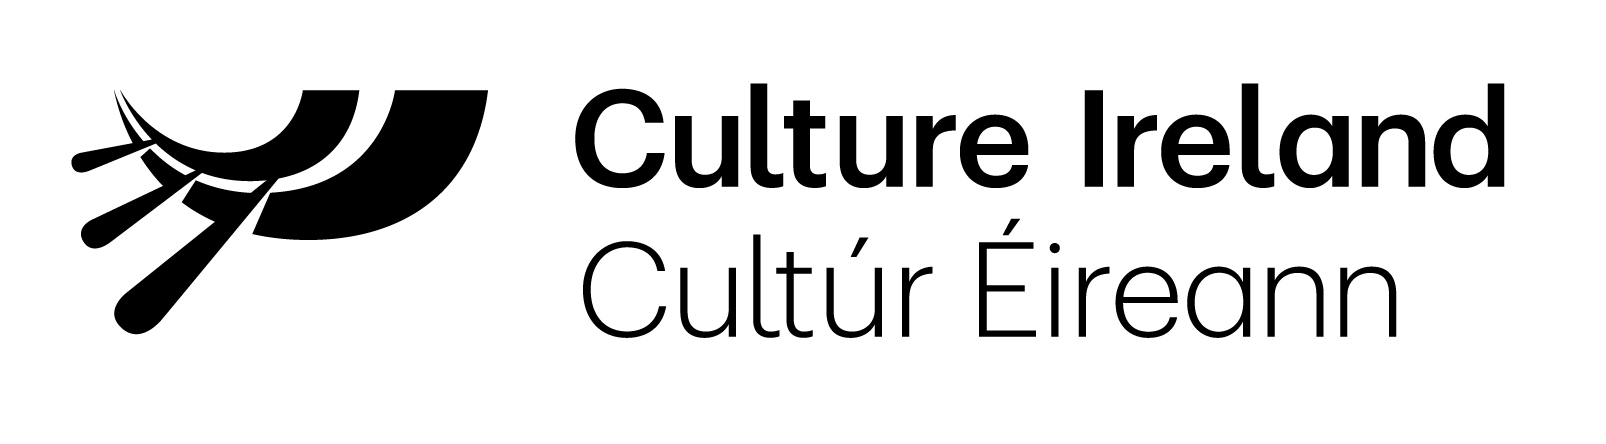 CULTURE_IRELAND_LOGO_BW.jpeg (1606×444)